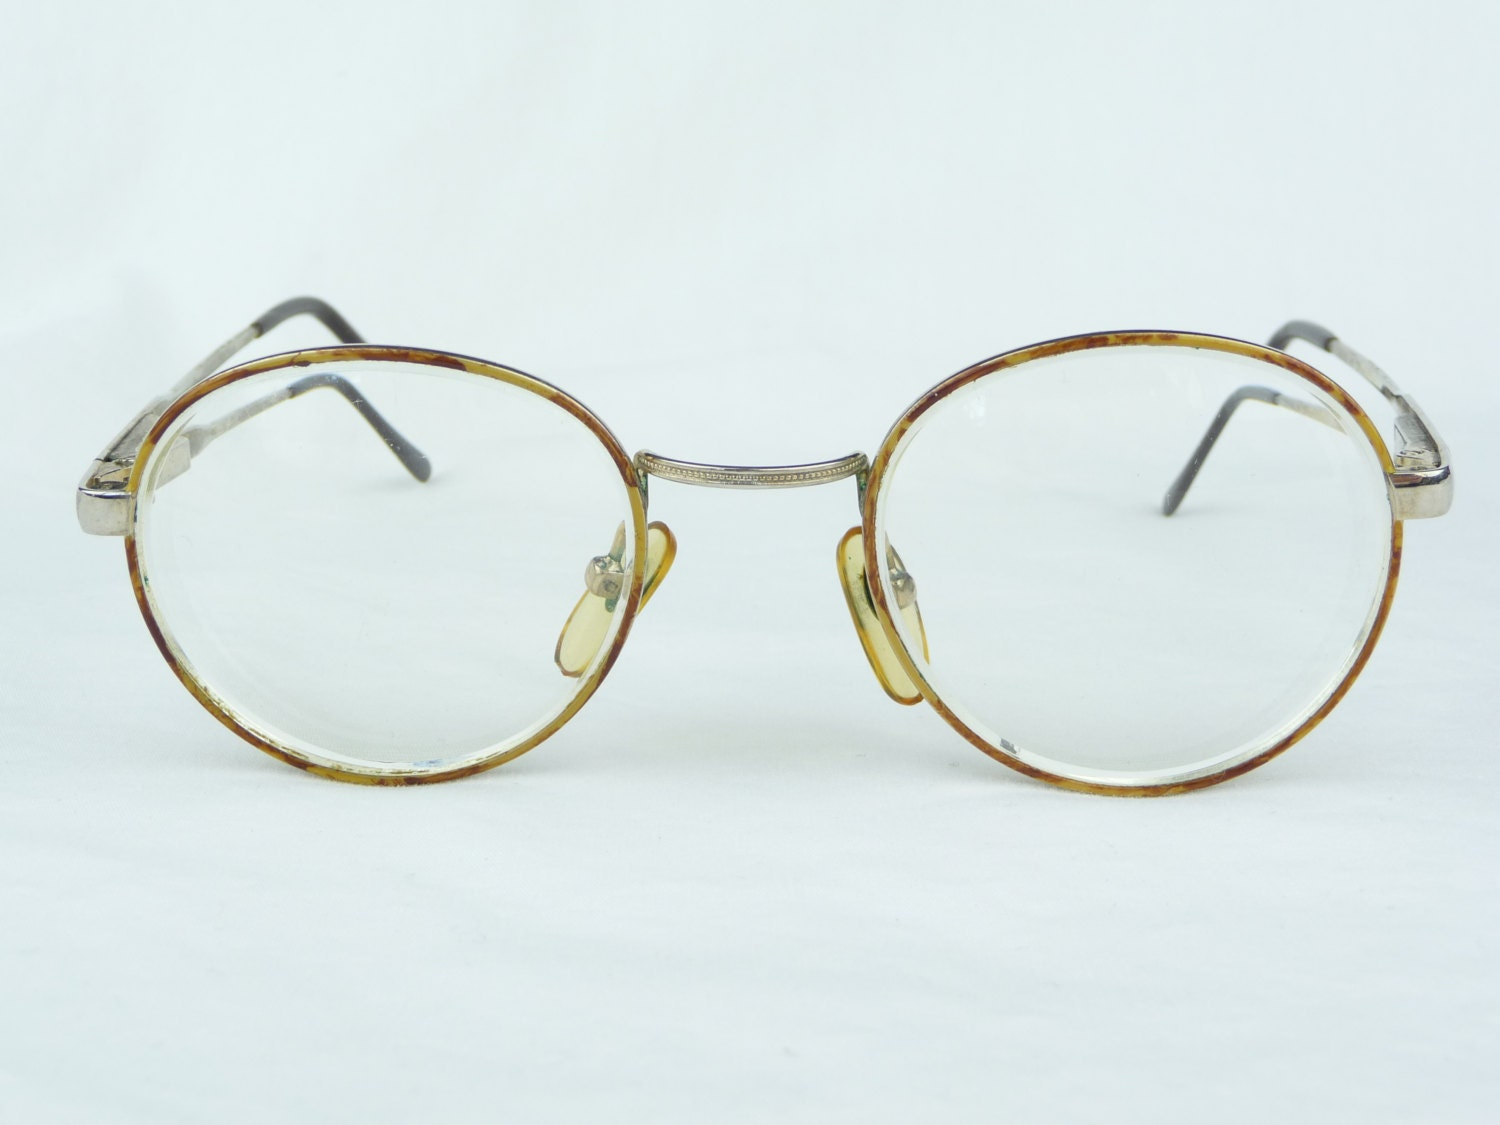 Gold Metal Glasses Frames : vintage eyeglasses gold metal frames brown spots vintage